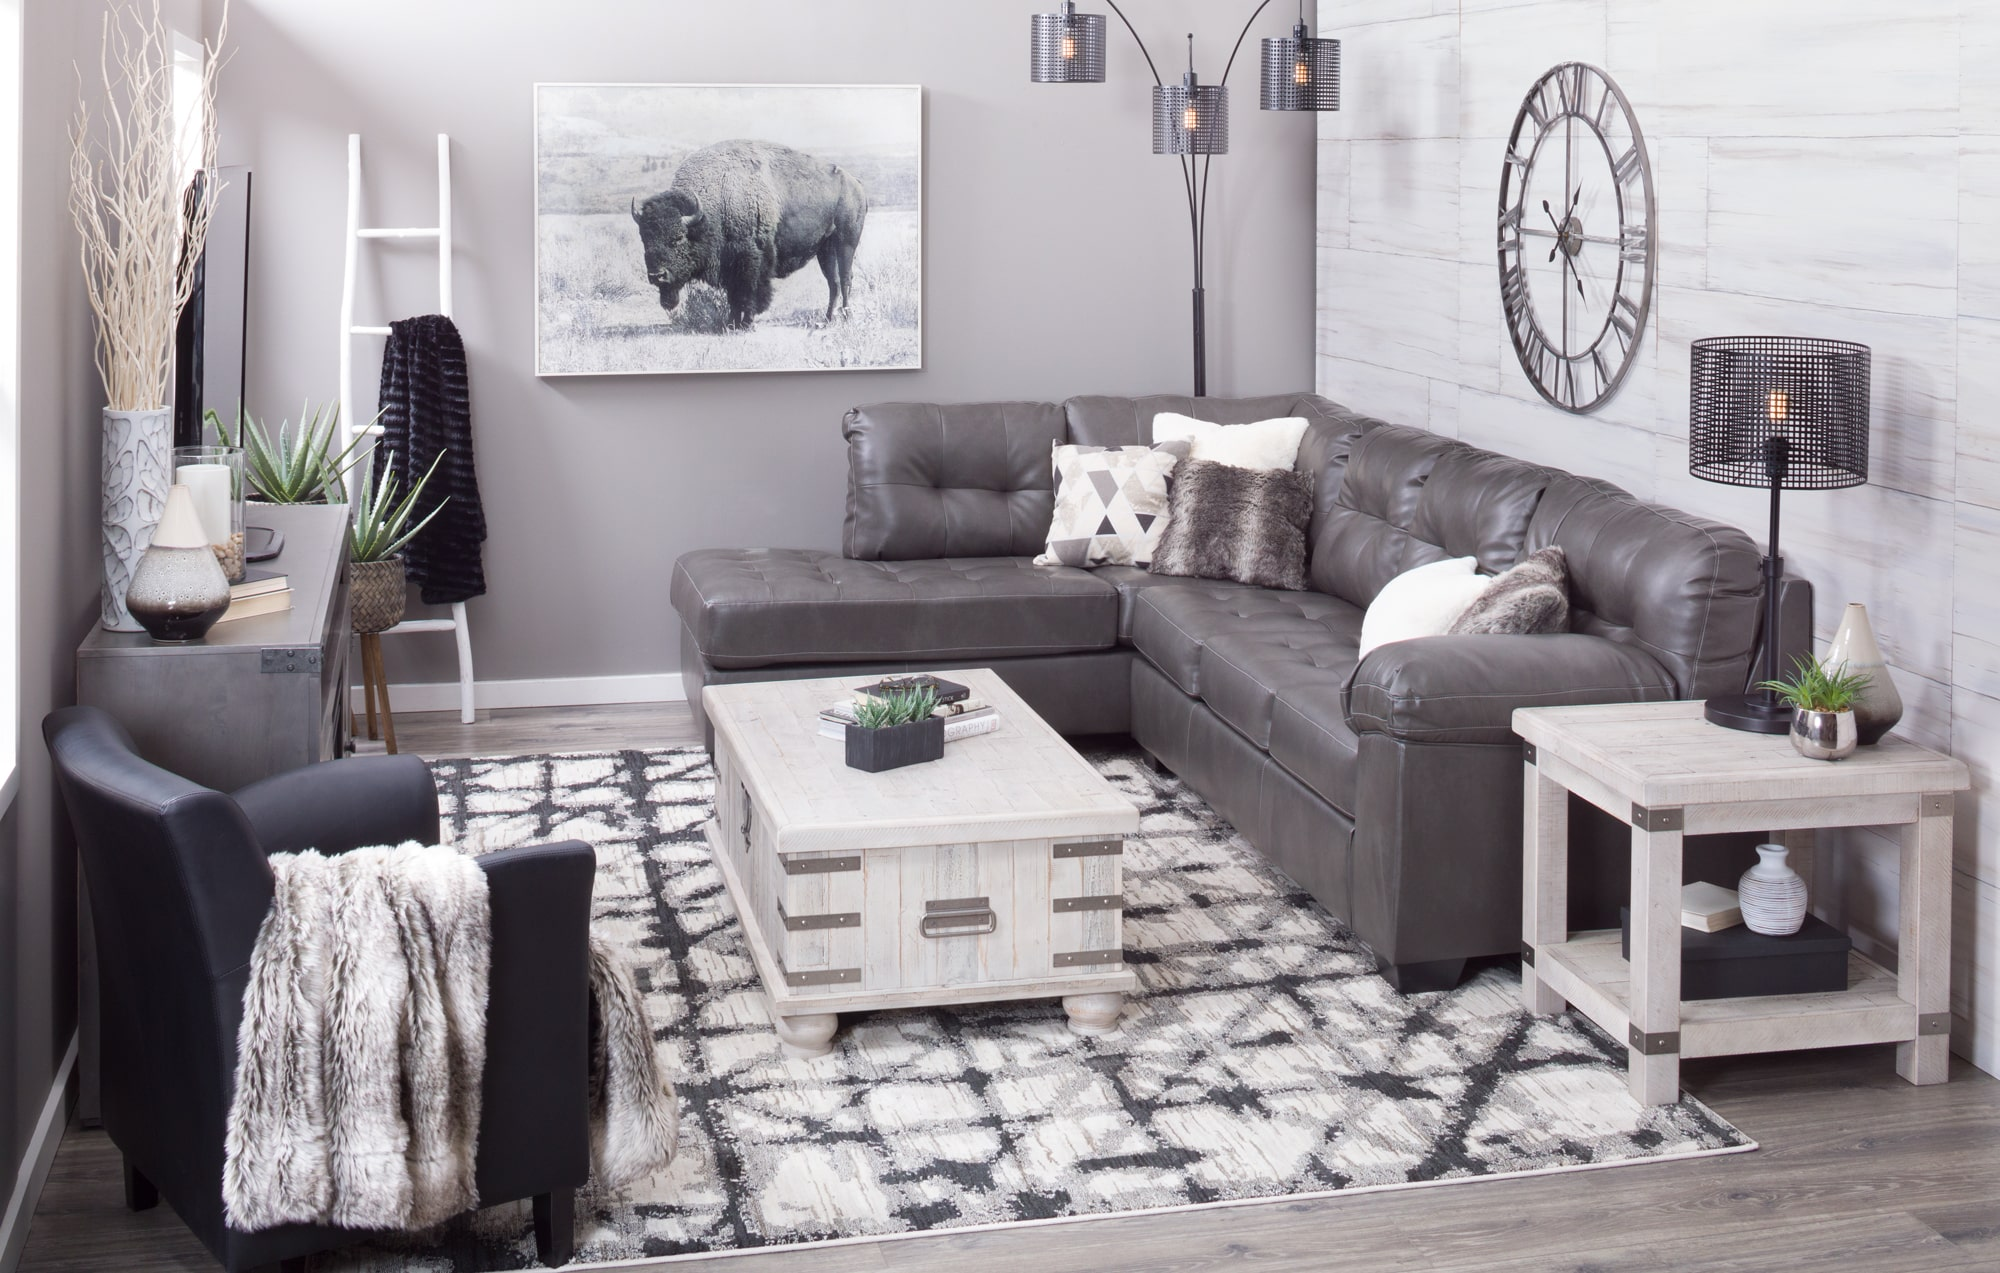 Small space living room with furniture that's in scale